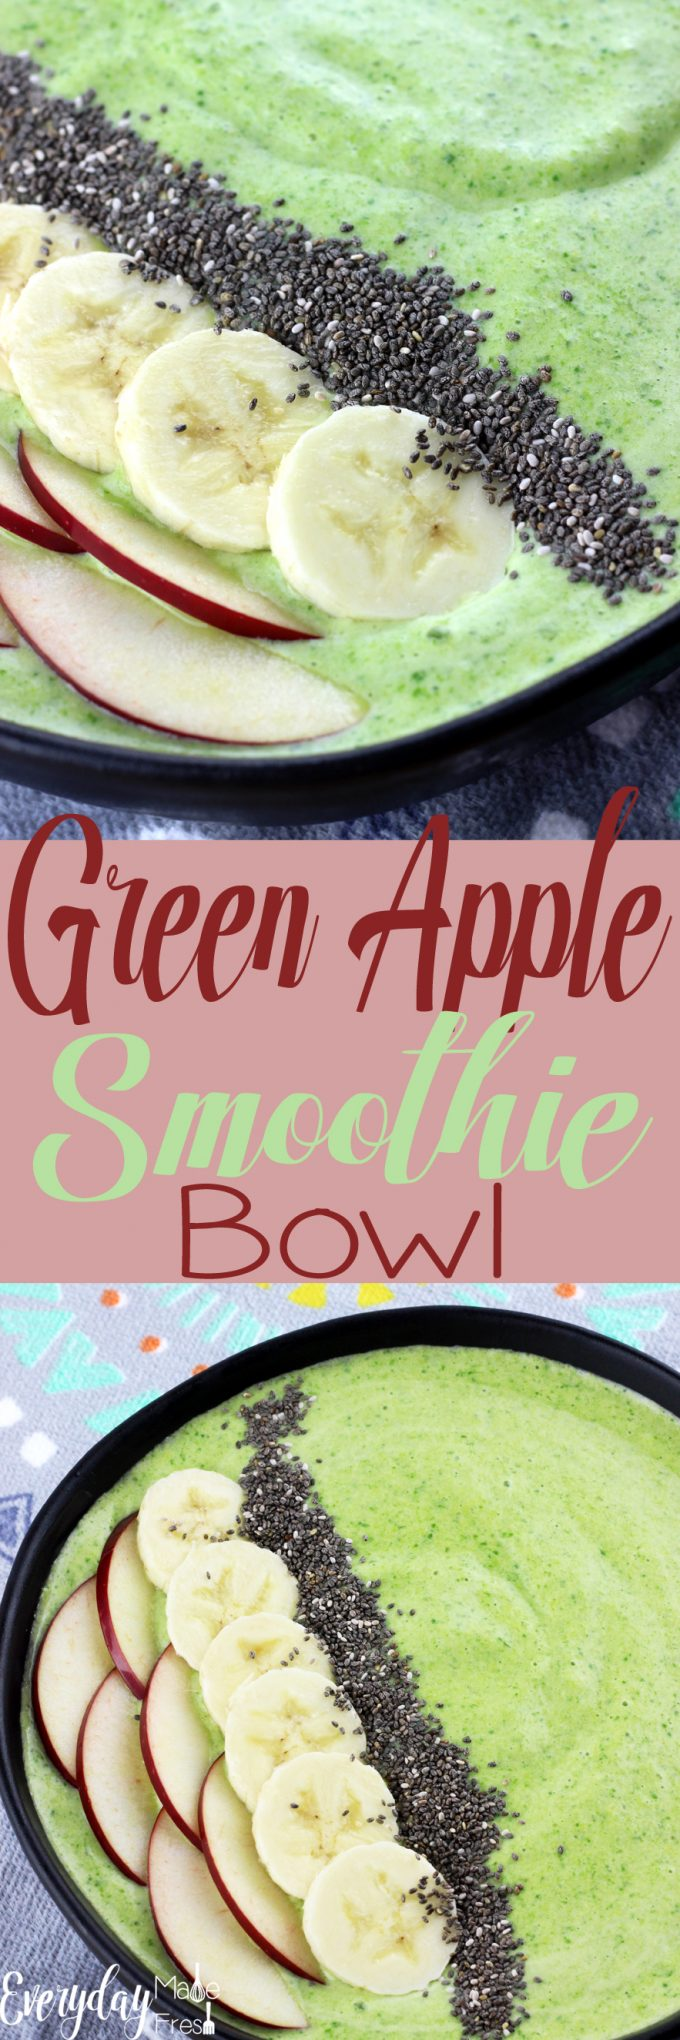 Smoothie bowls are all the rage! They are simple to make, fun to eat, and healthy. In this Green Apple Smoothie Bowl you can't taste the greens which means it's kid pleasing!   EverydayMadeFresh.com